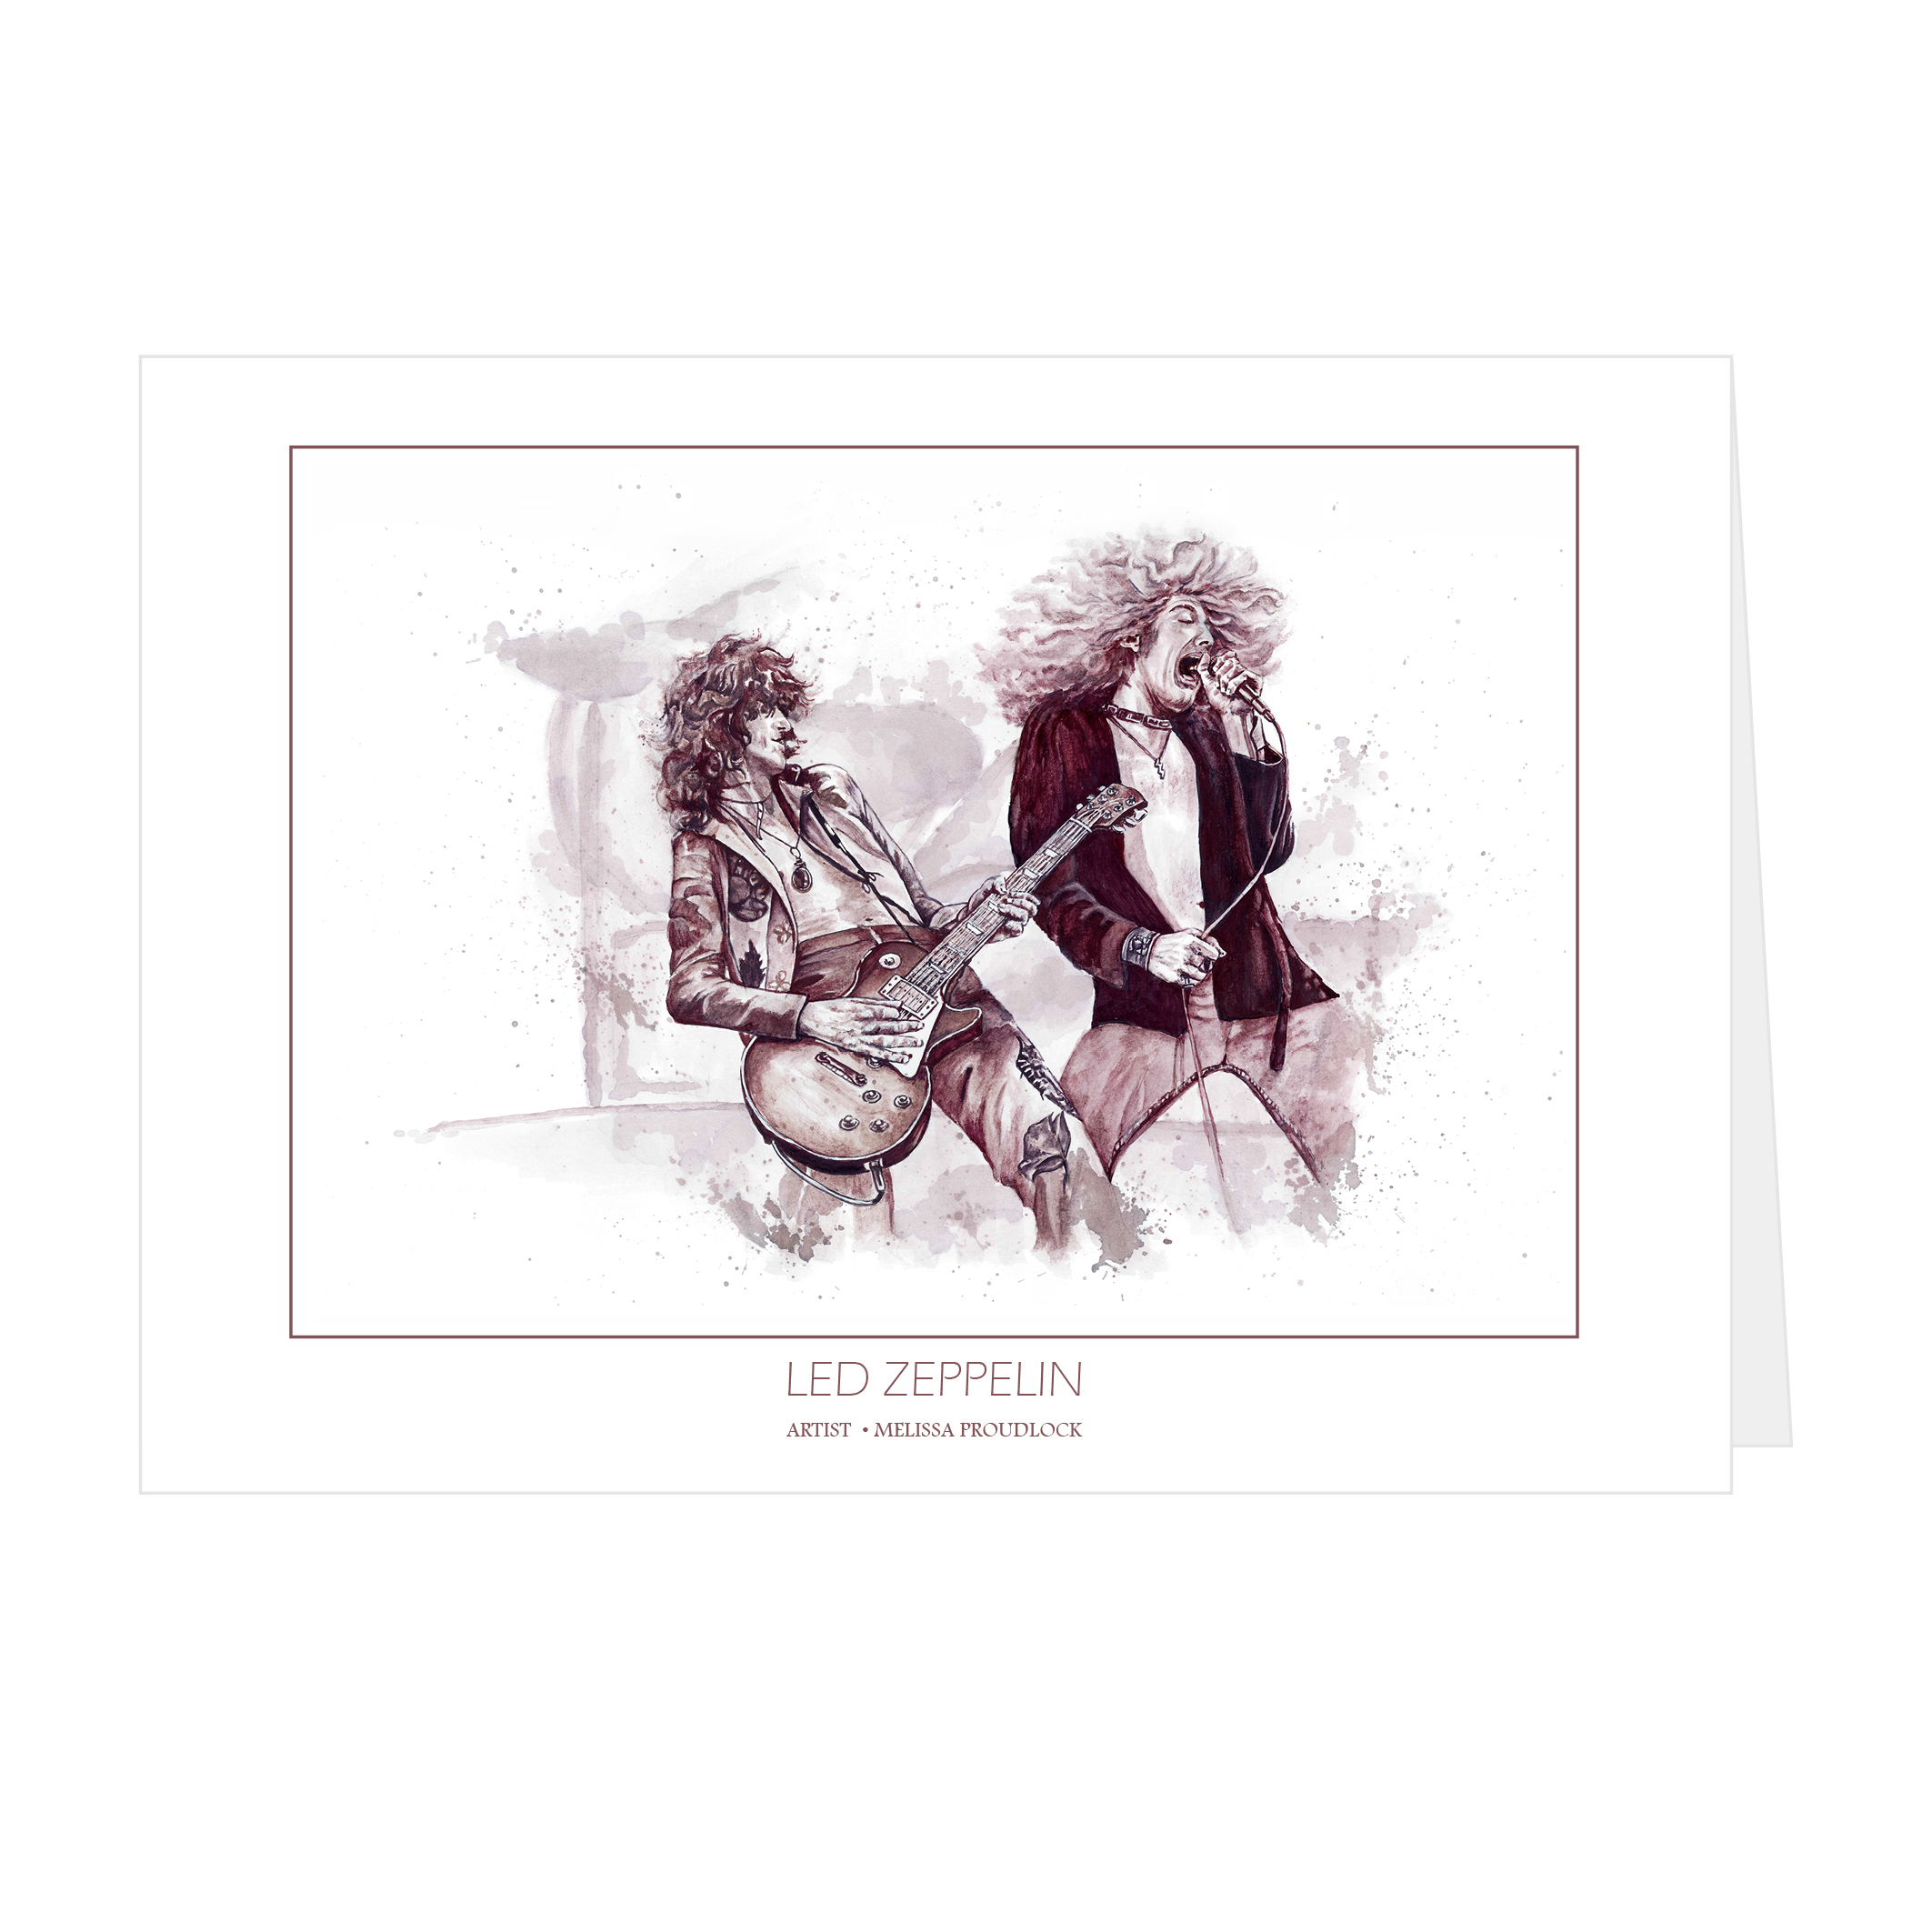 Led Zeppelin Card